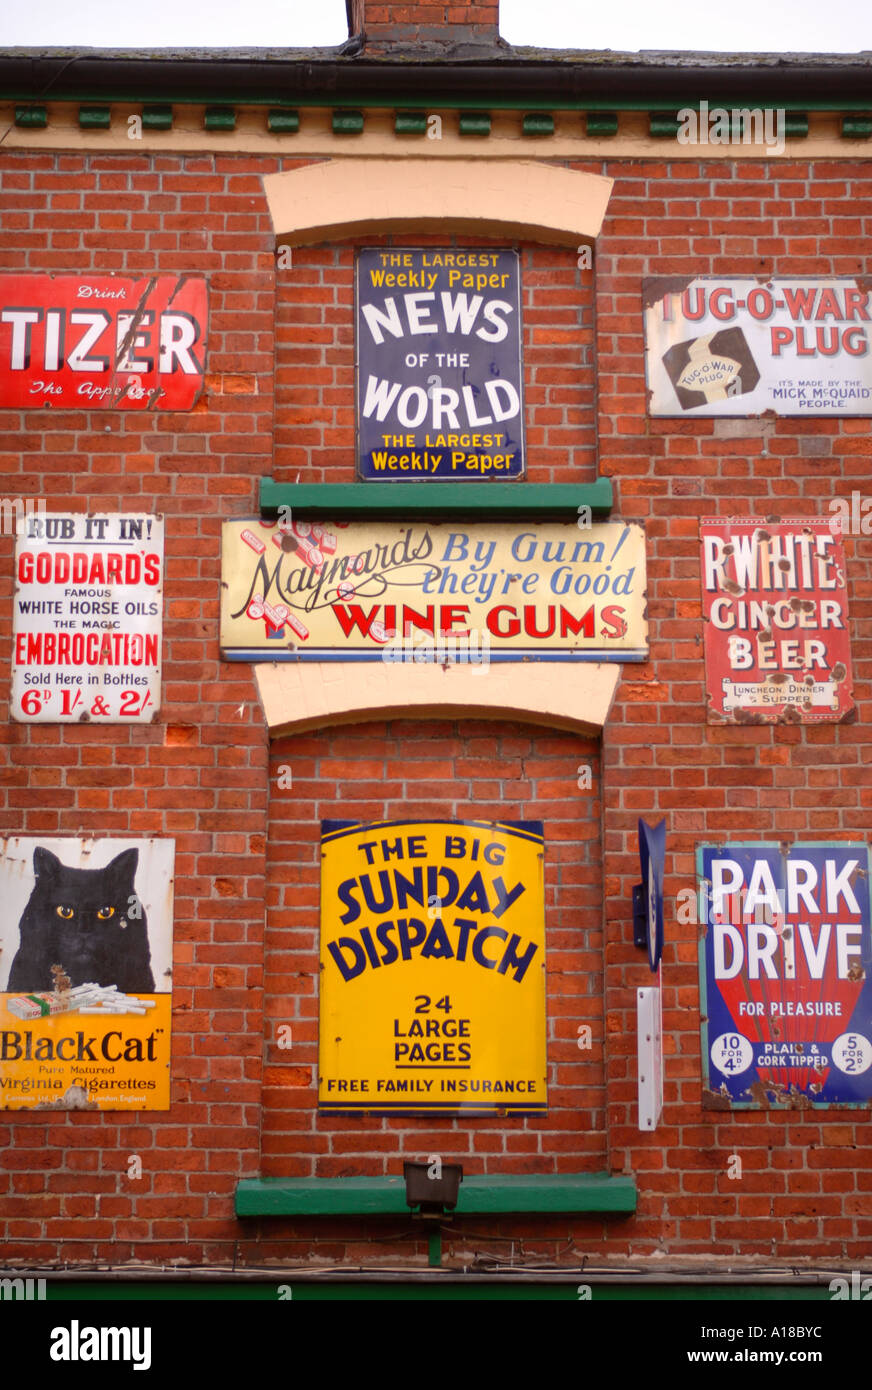 A COLLECTION OF OLD TIN ADVERTISING SIGNS IN THE GLOUCESTERSHIRE TOWN OF ROSS ON WYE UK - Stock Image